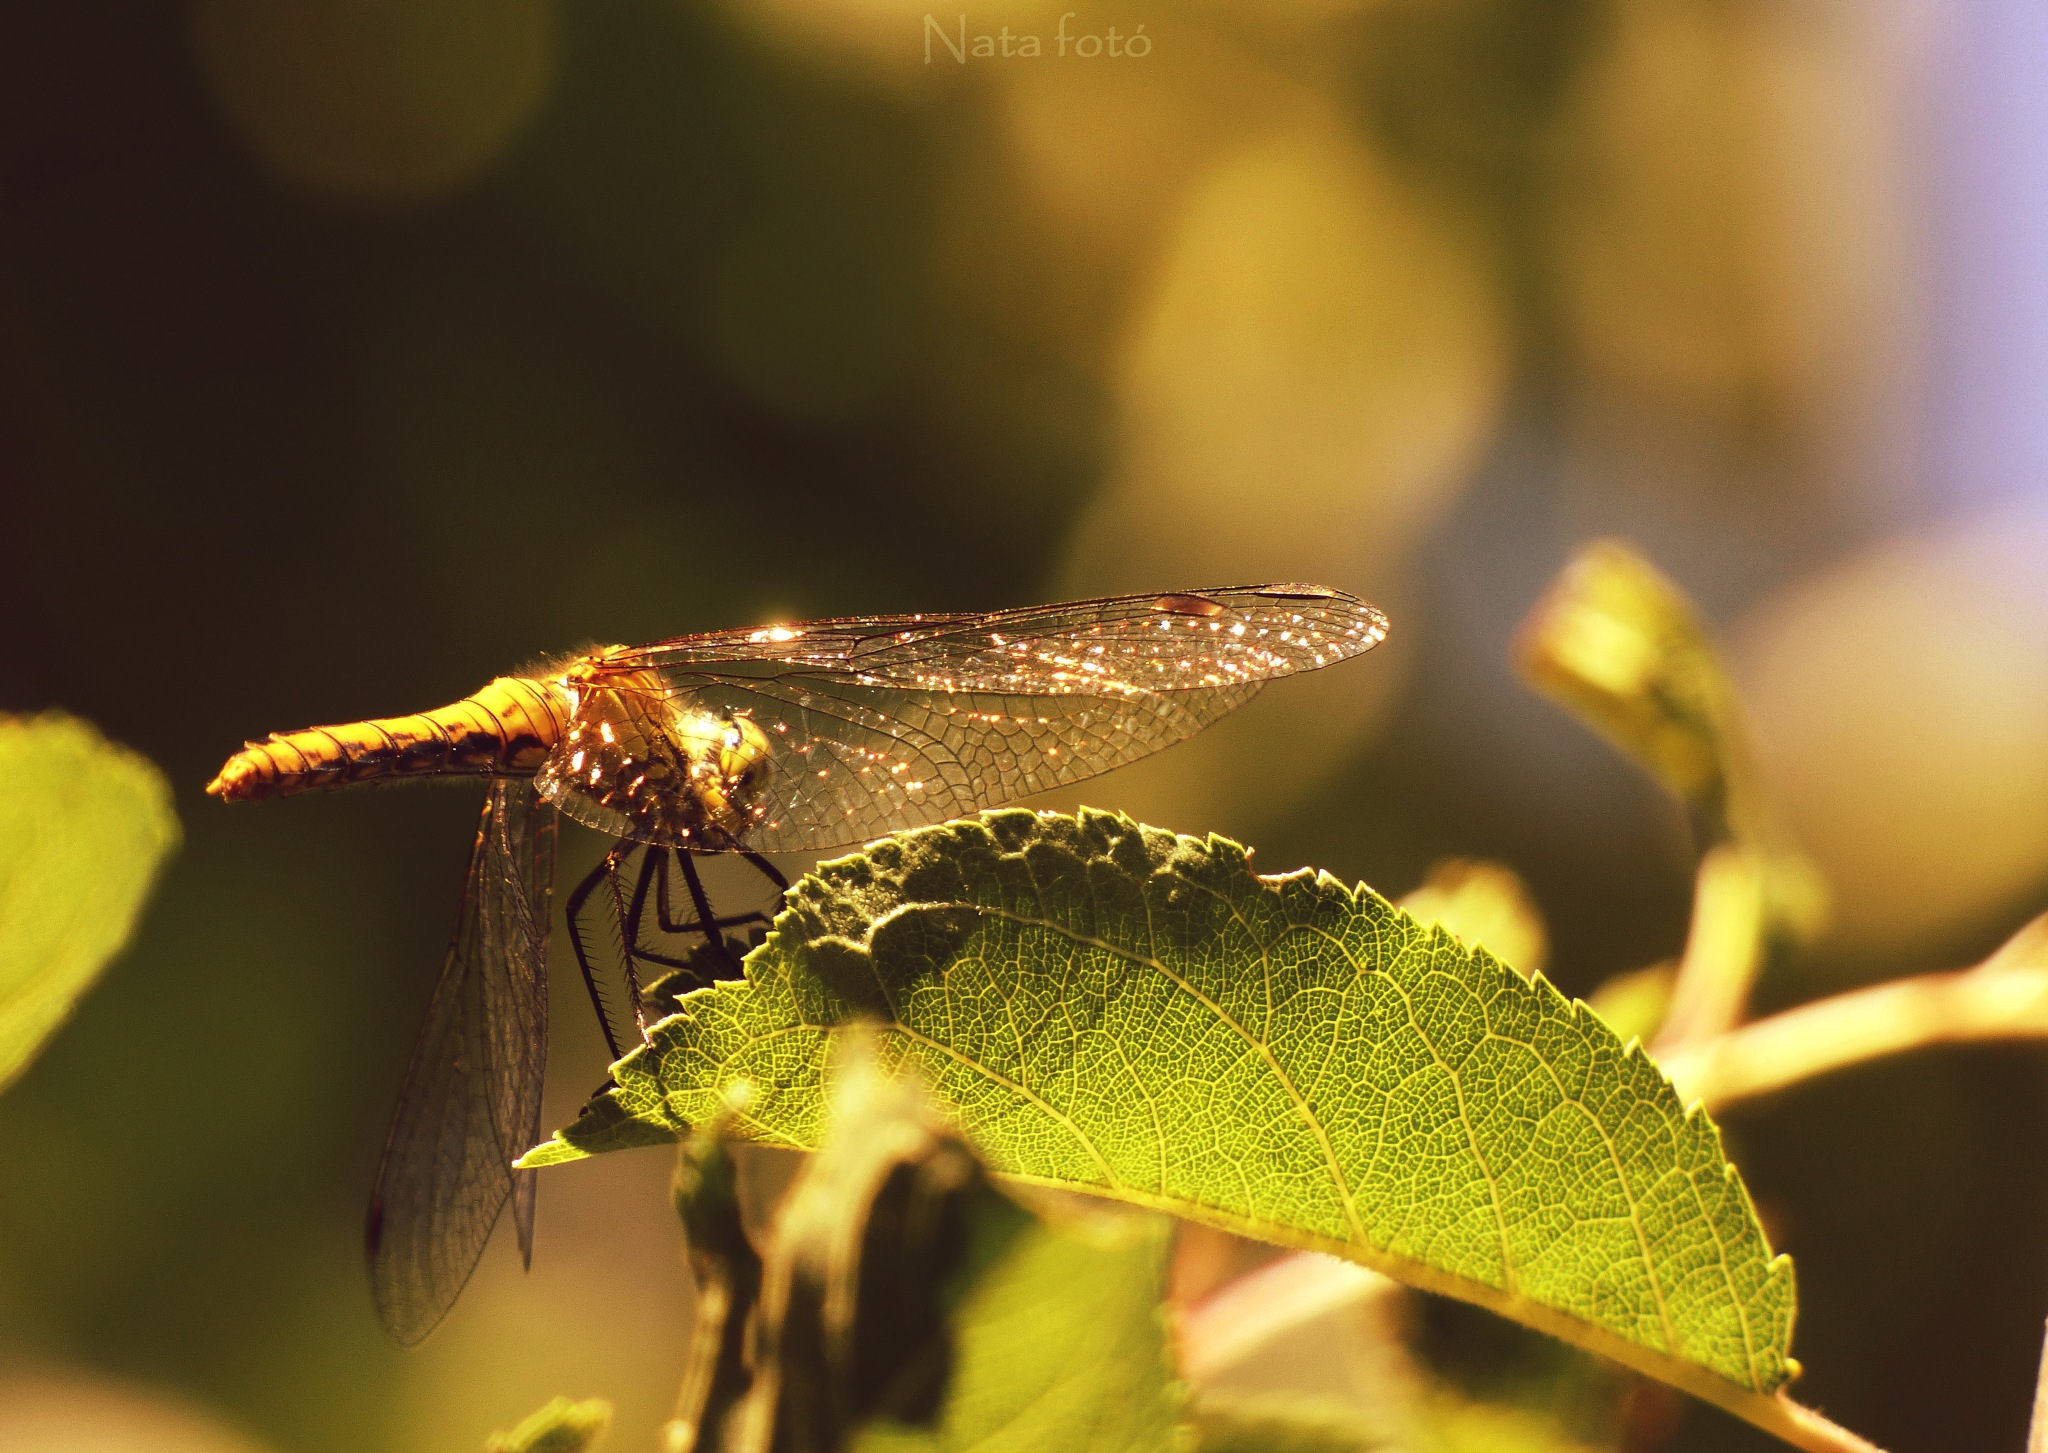 Dragonfly in the sunset by Nata